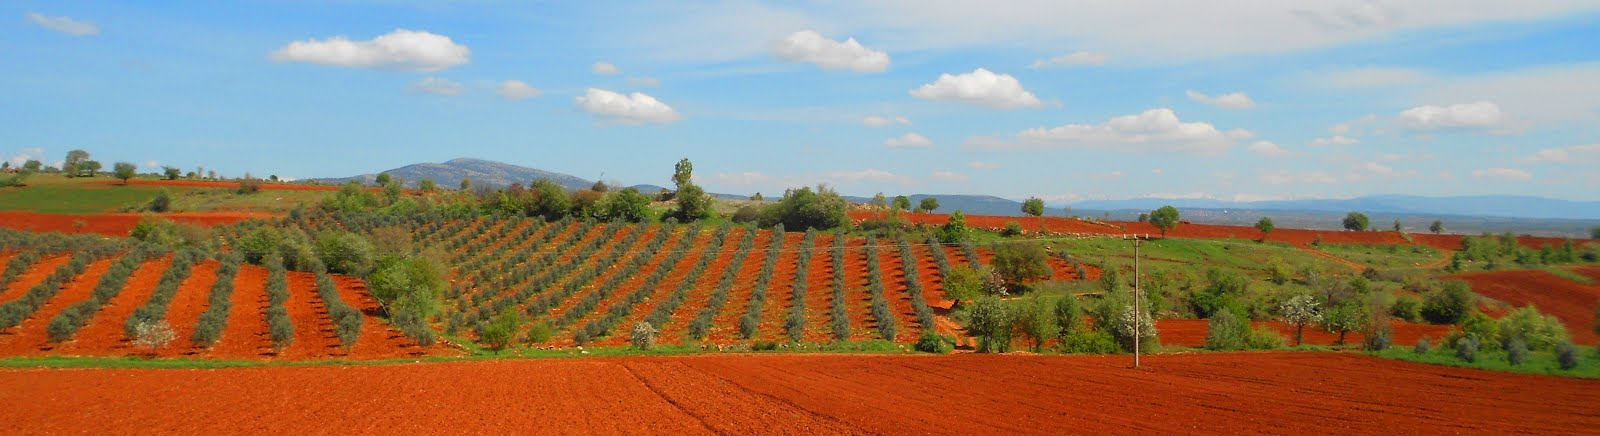 Olive fields by Noreen